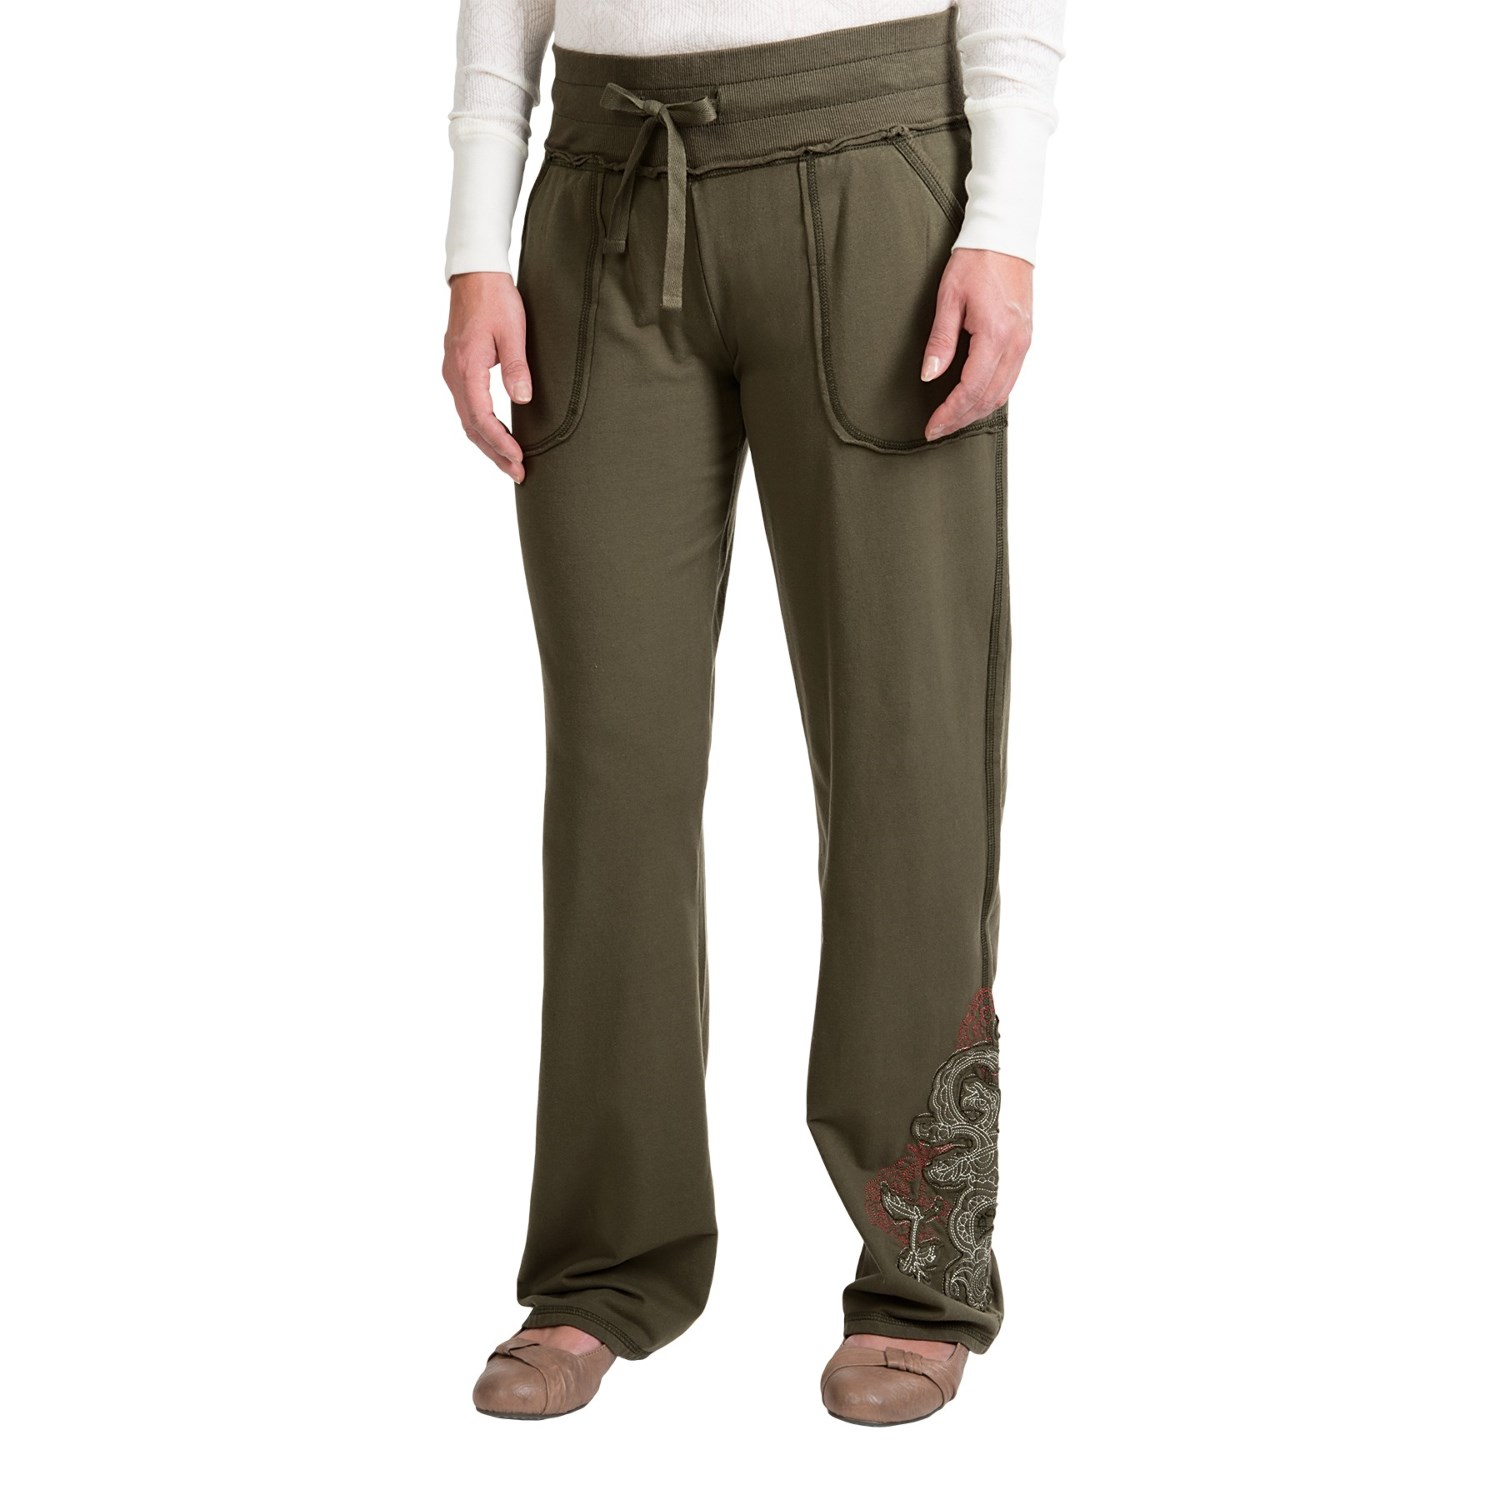 Aventura Clothing Callie Pants - Organic Cotton (For Women) in Dusty